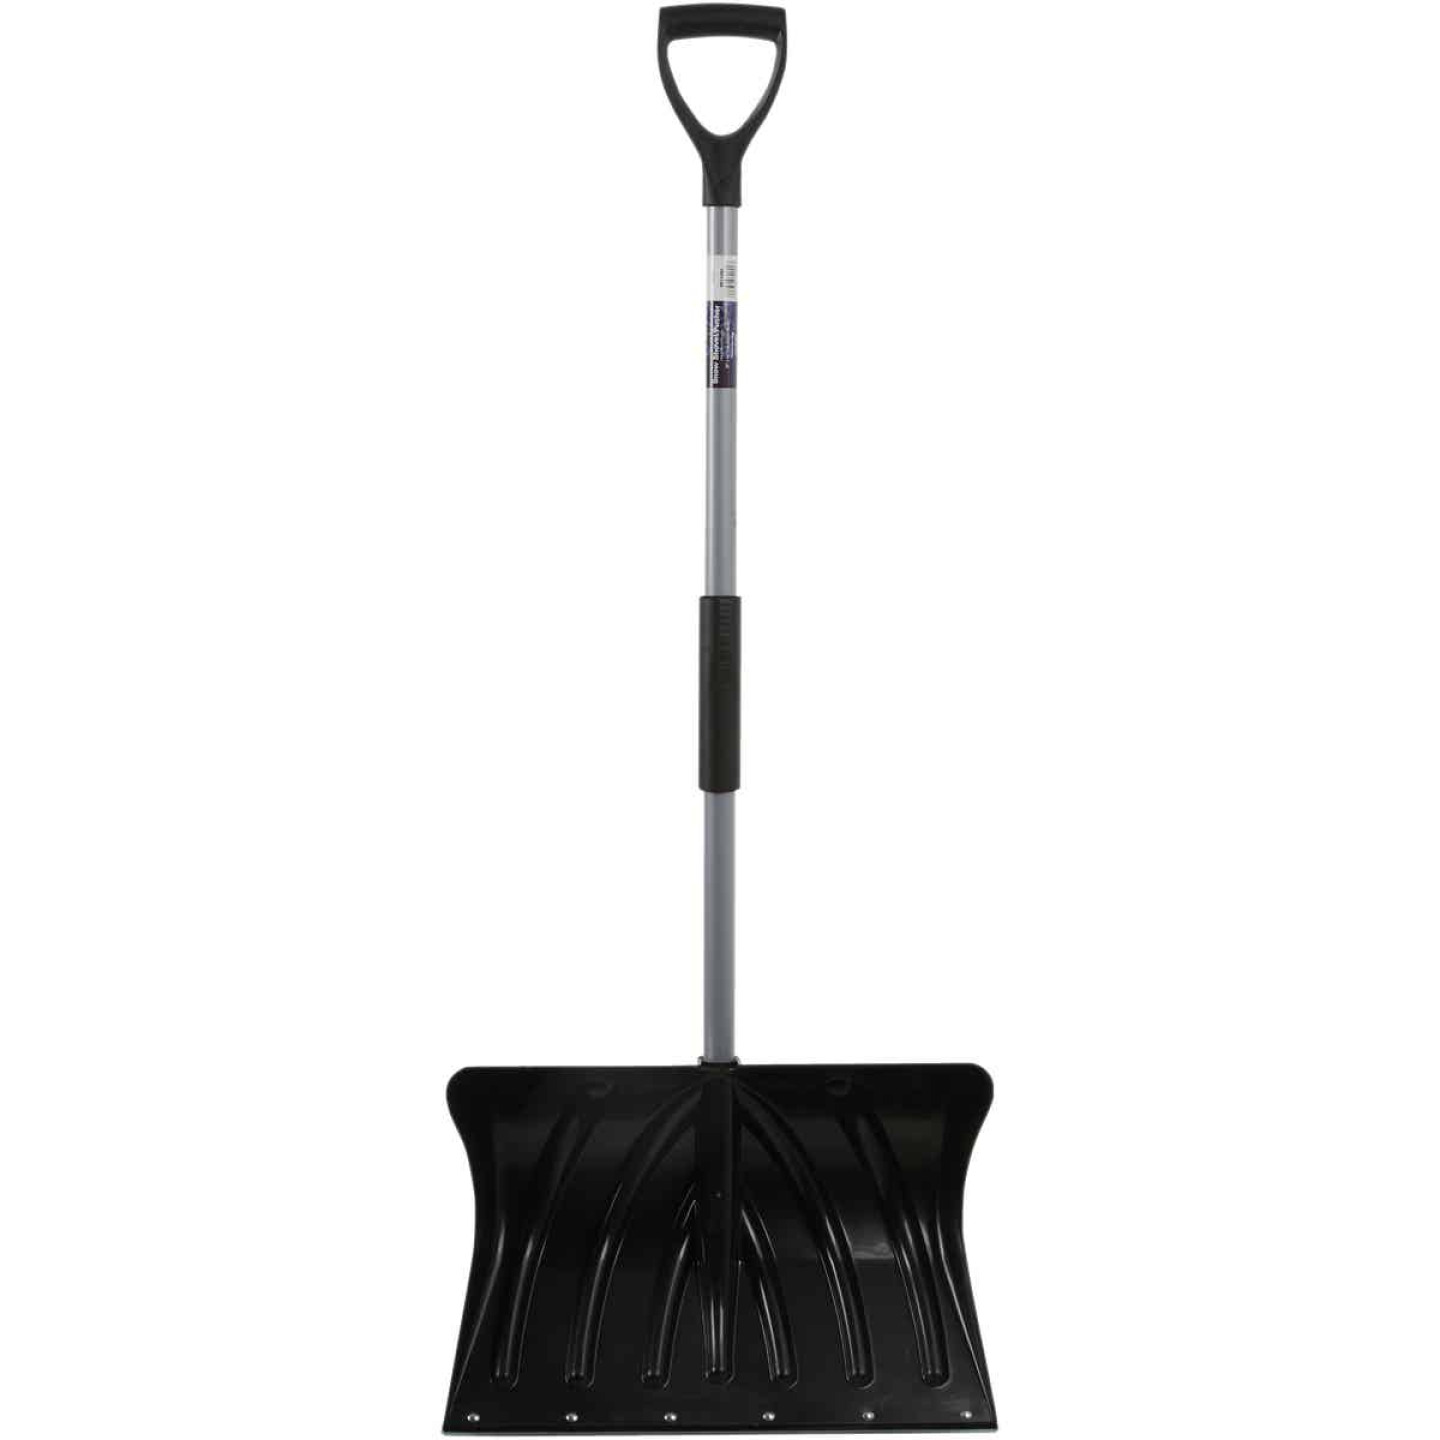 20 In. Poly Snow Shovel with 38 In. Steel Handle Image 2